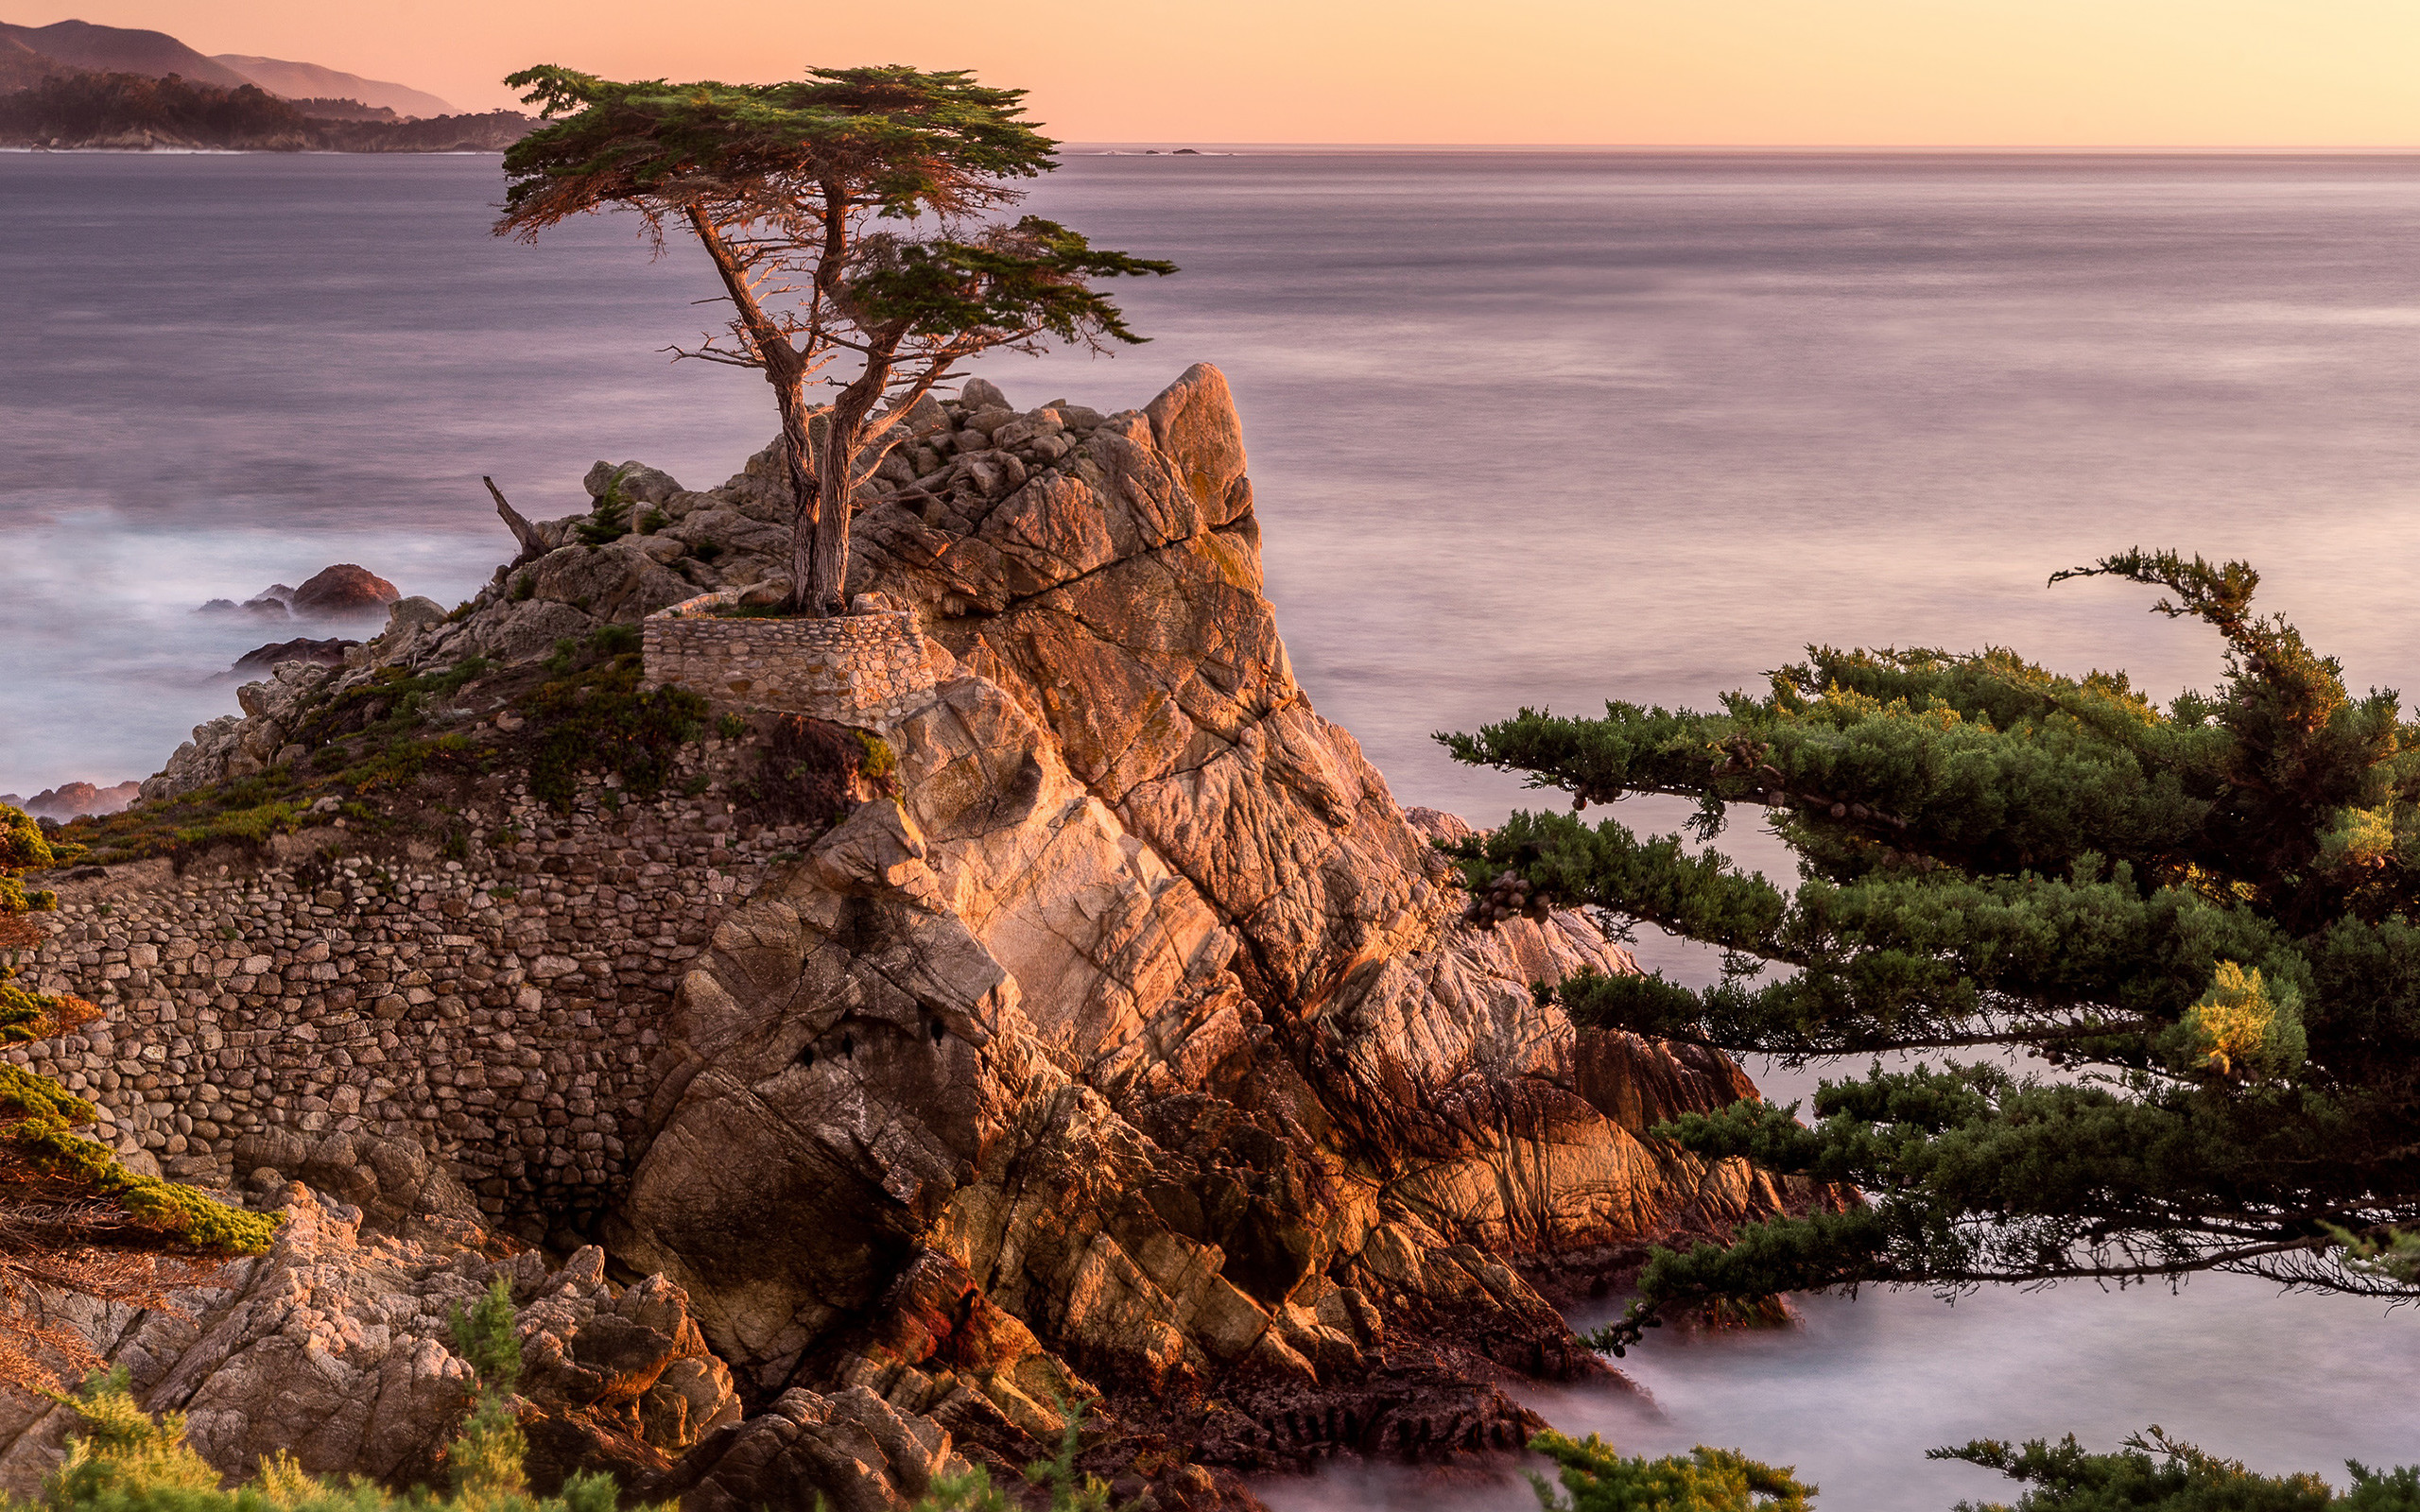 Res: 2560x1600, Daily Wallpaper: Lone Cypress, Pebble Beach, California   I Like To Waste  My Time